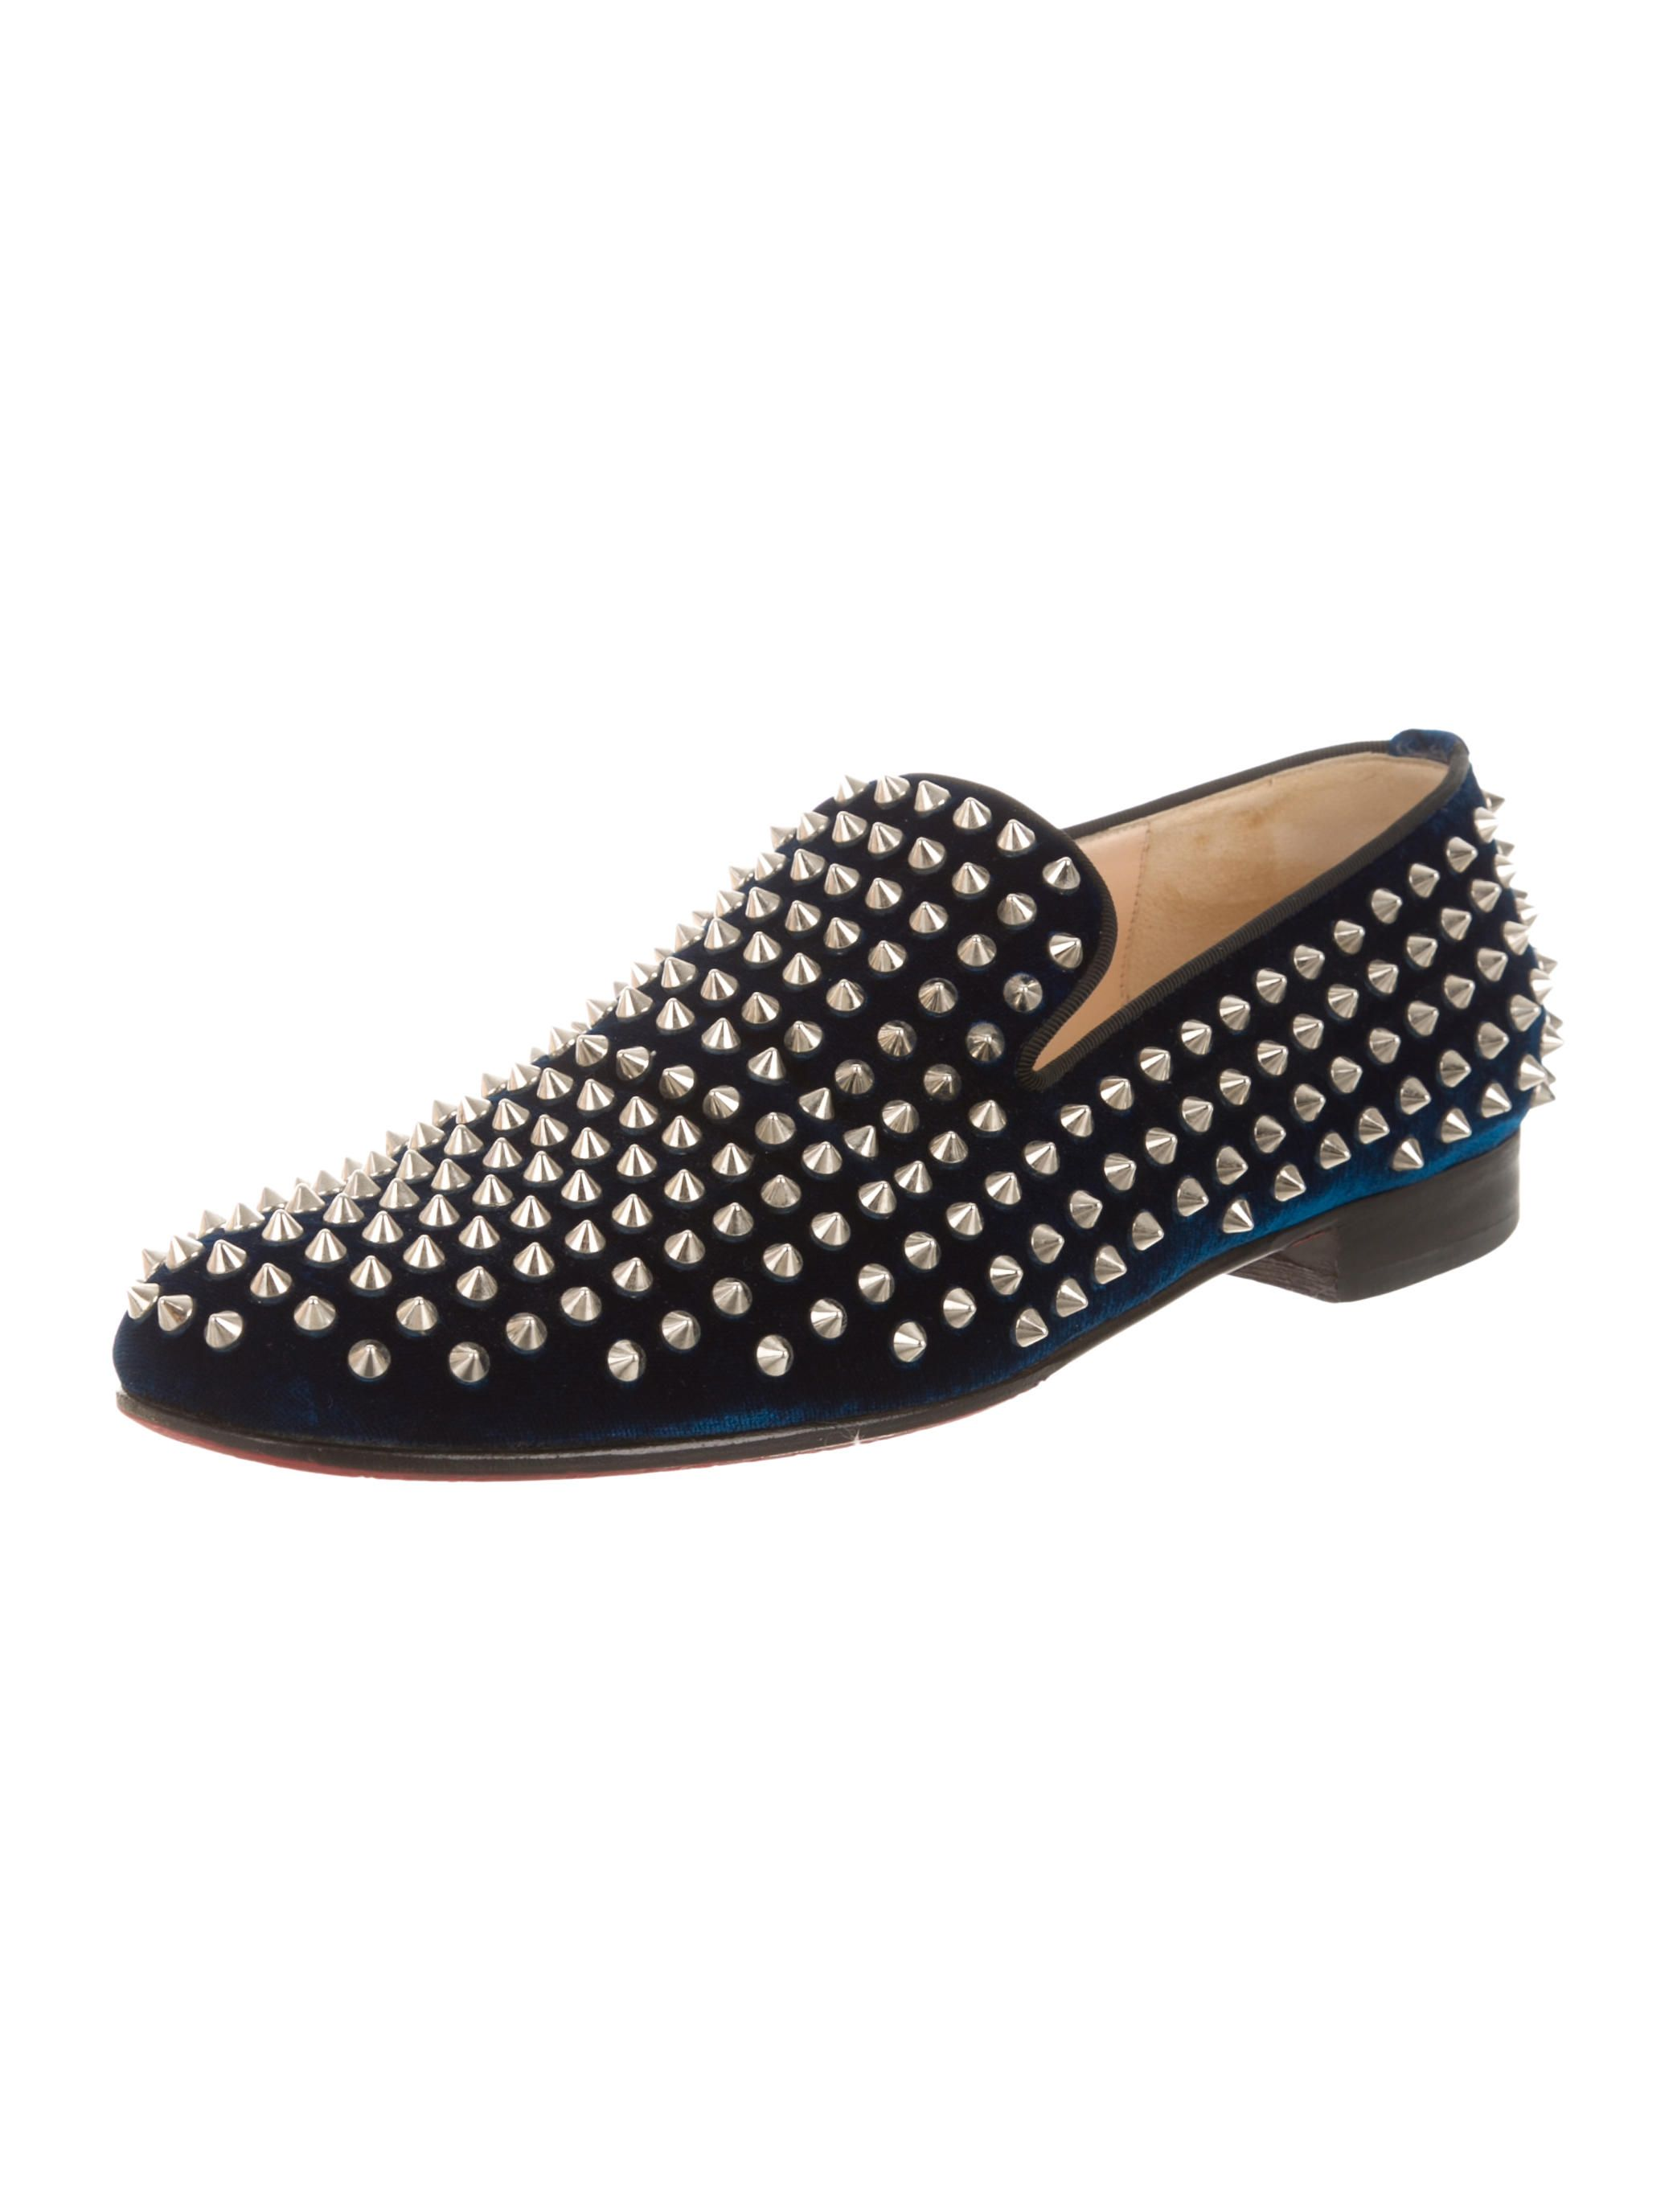 eea8b6f71fe Christian Louboutin Velvet Rollerboy Spikes Loafers - Mens Shoes - CHT49865